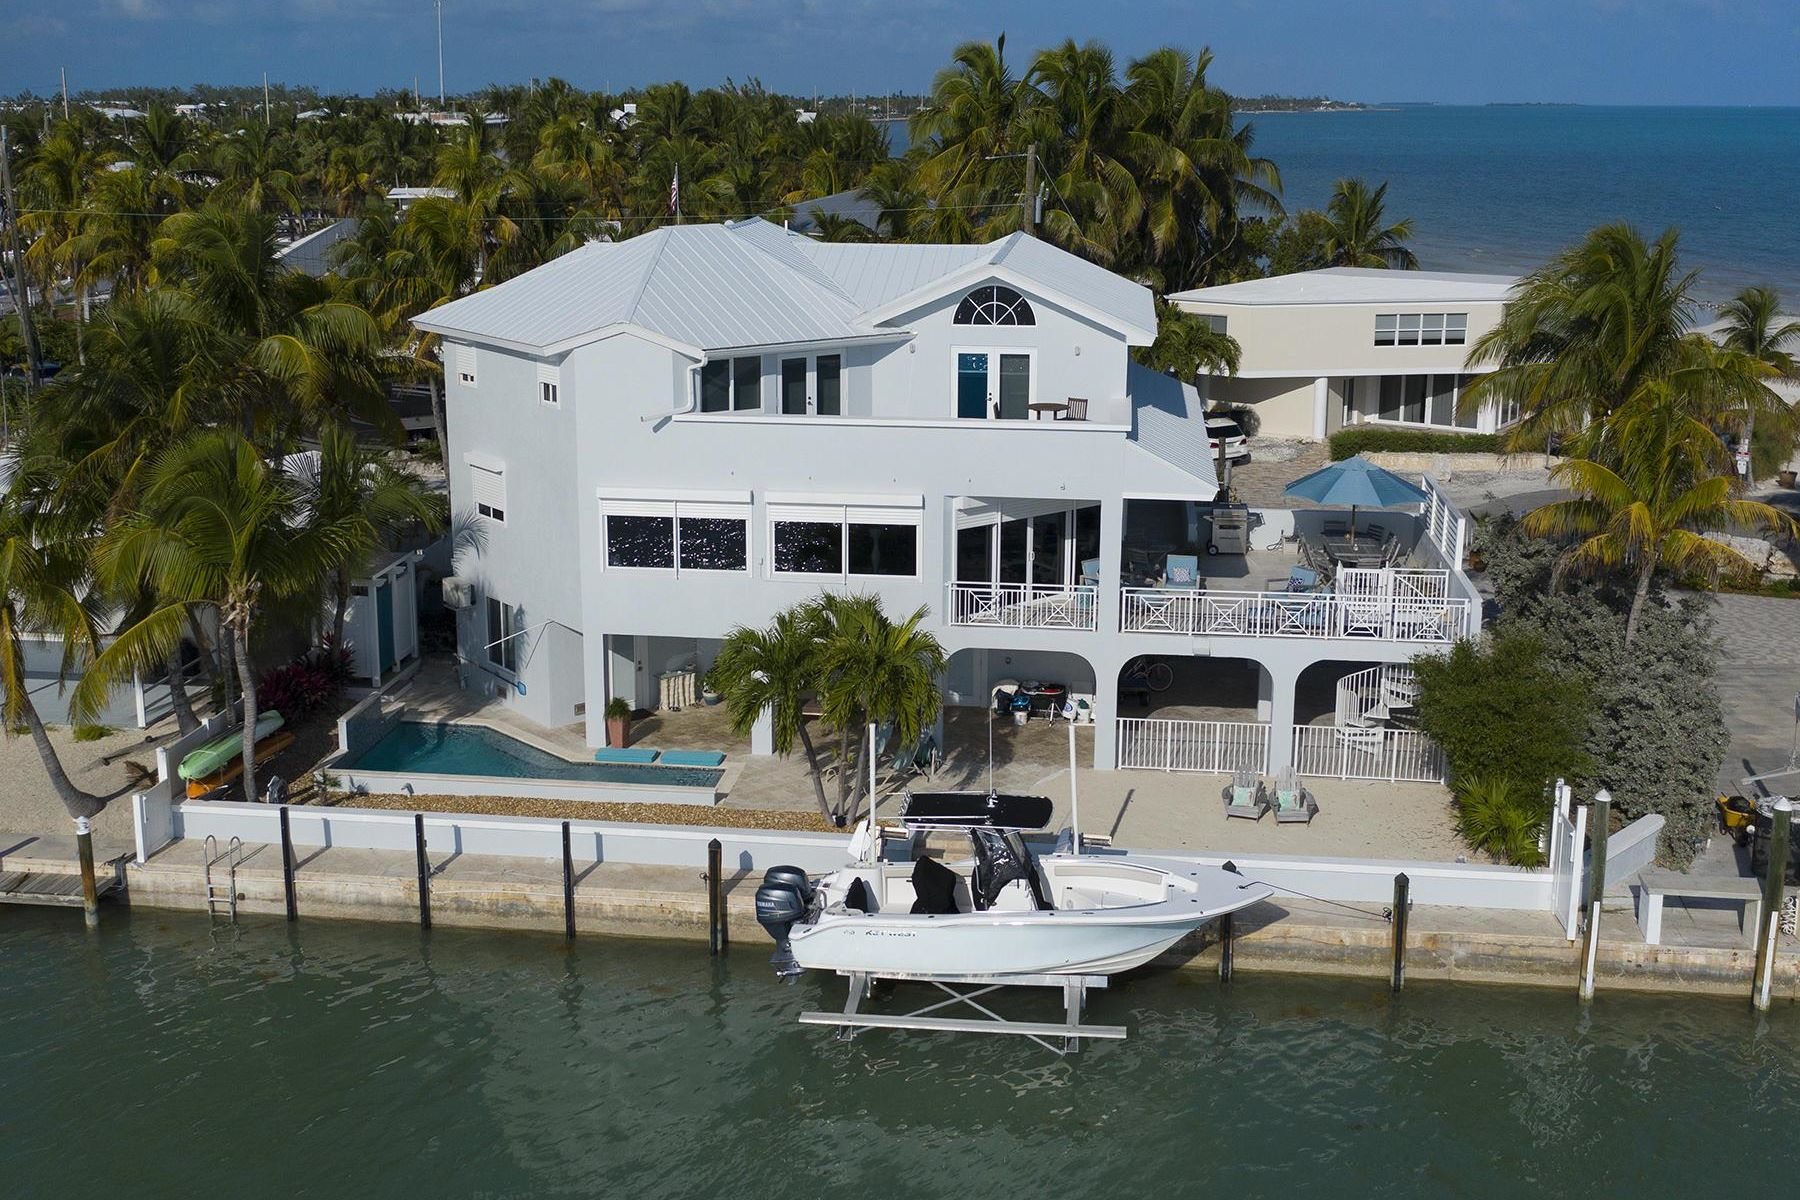 Single Family Homes for Active at 262 Sunset Drive, Islamorada, FL 262 Sunset Drive Islamorada, Florida 33036 United States